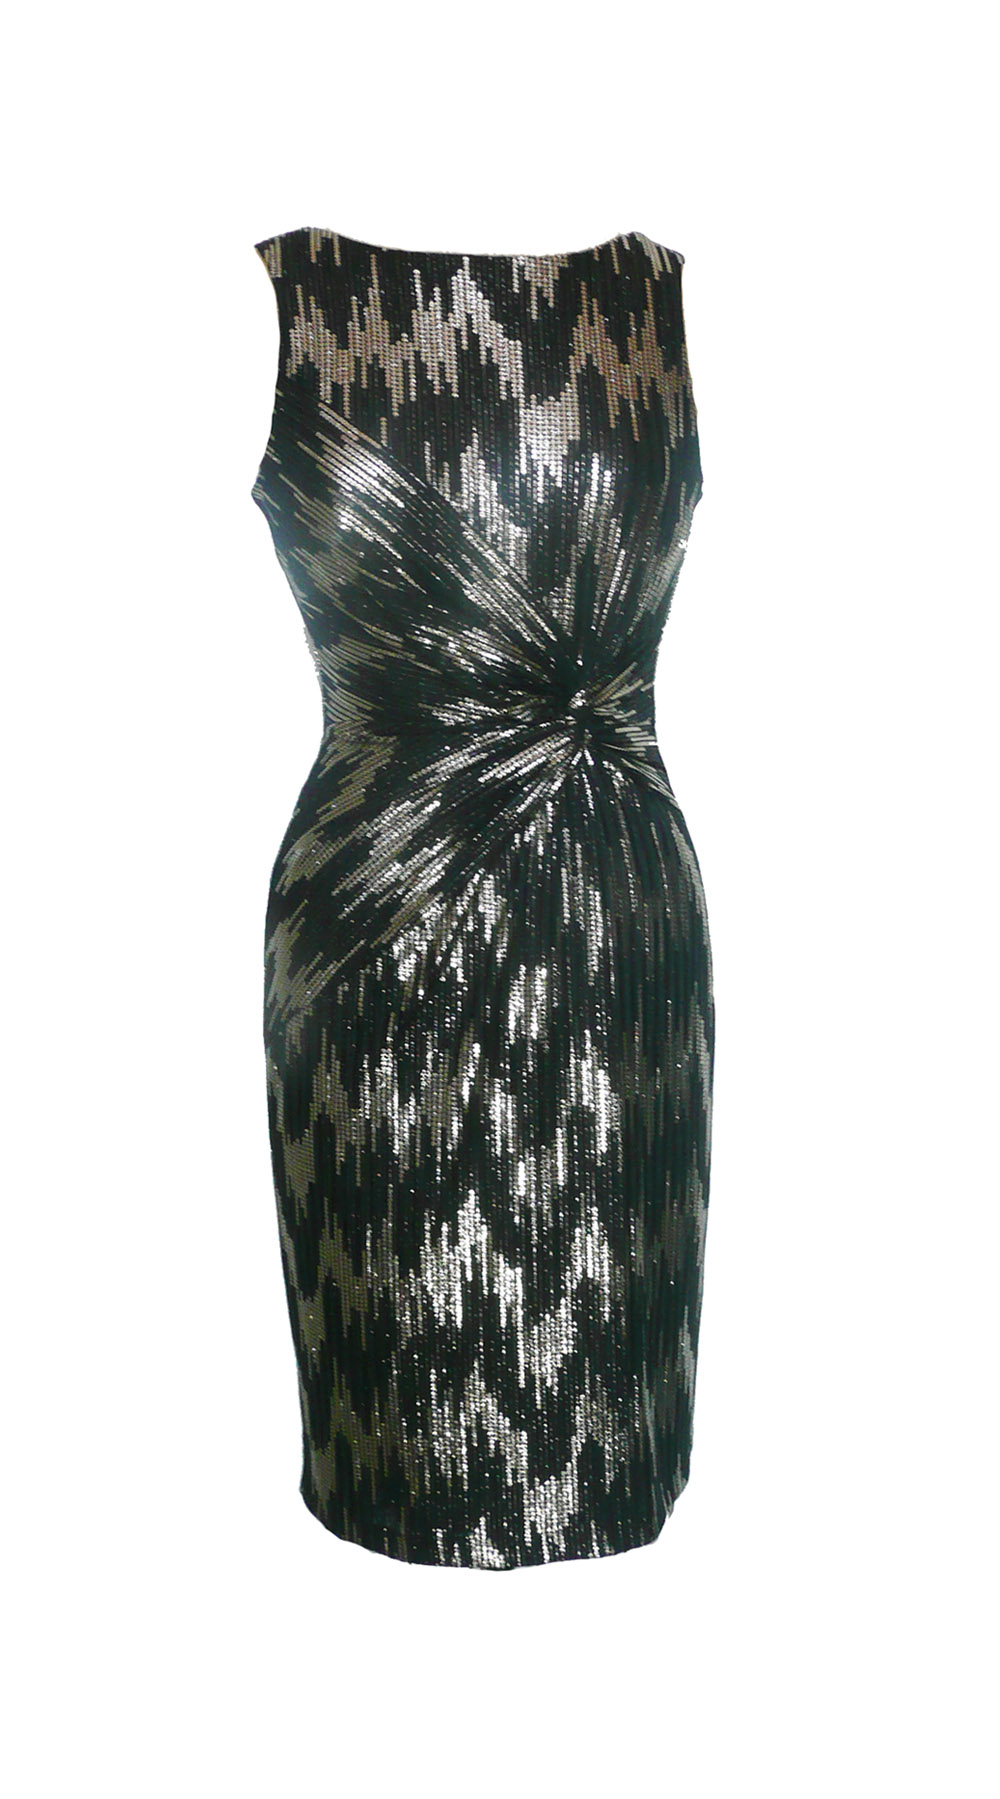 dress blk gld shimmer.jpg